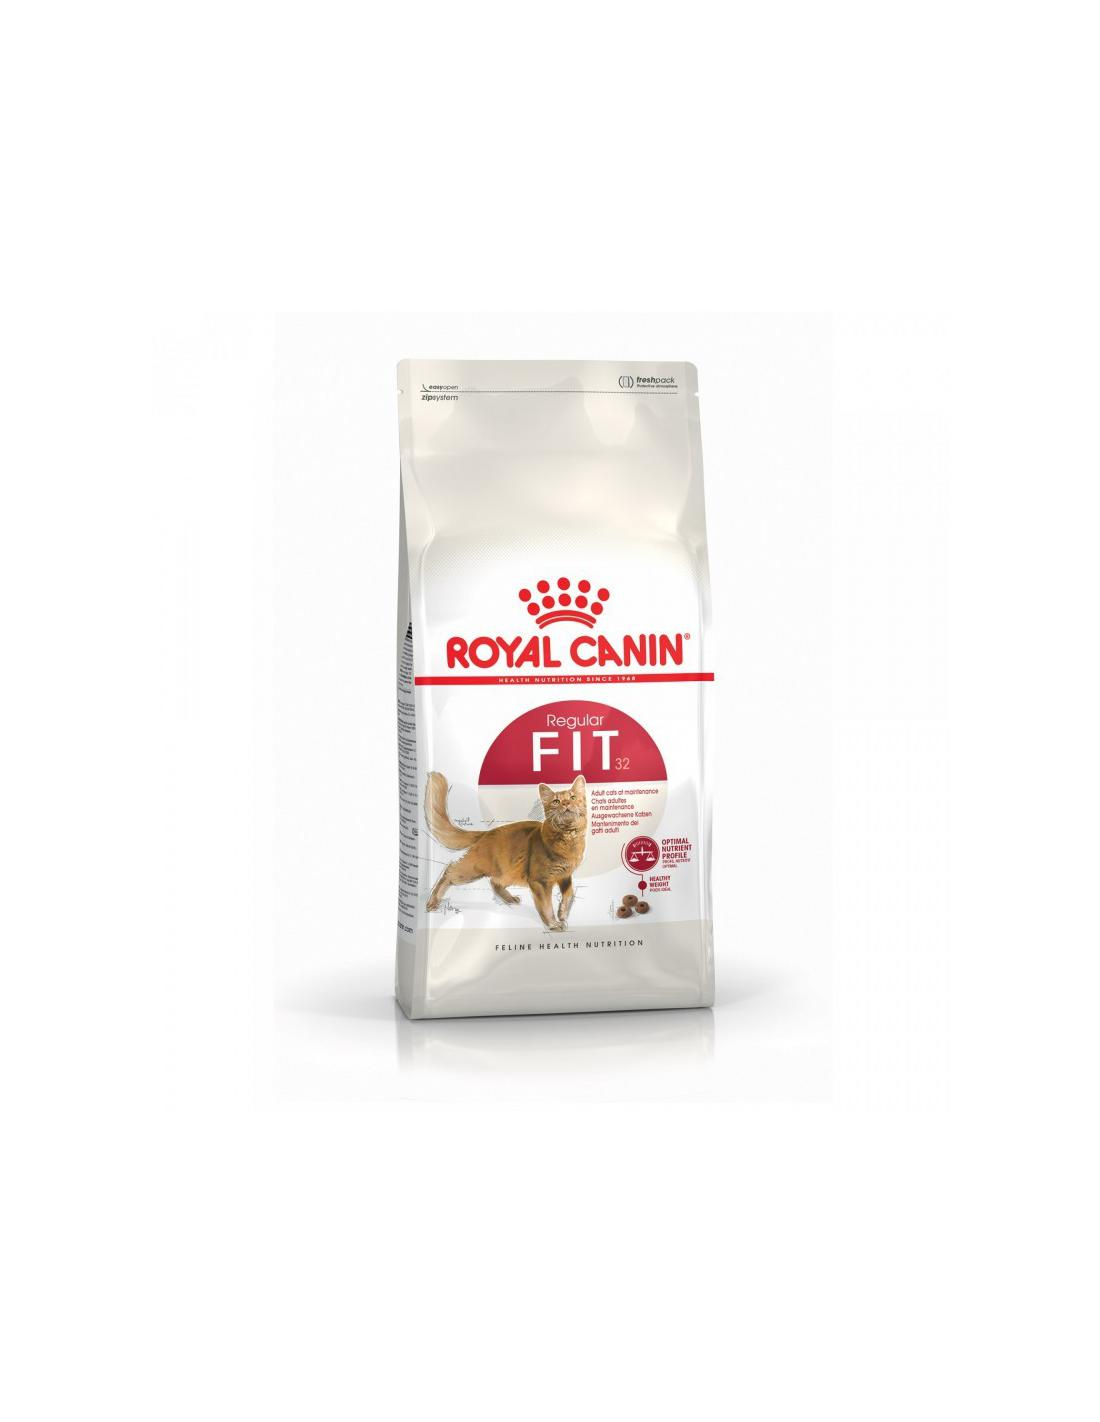 FIT 32 10KG ROYAL CANIN